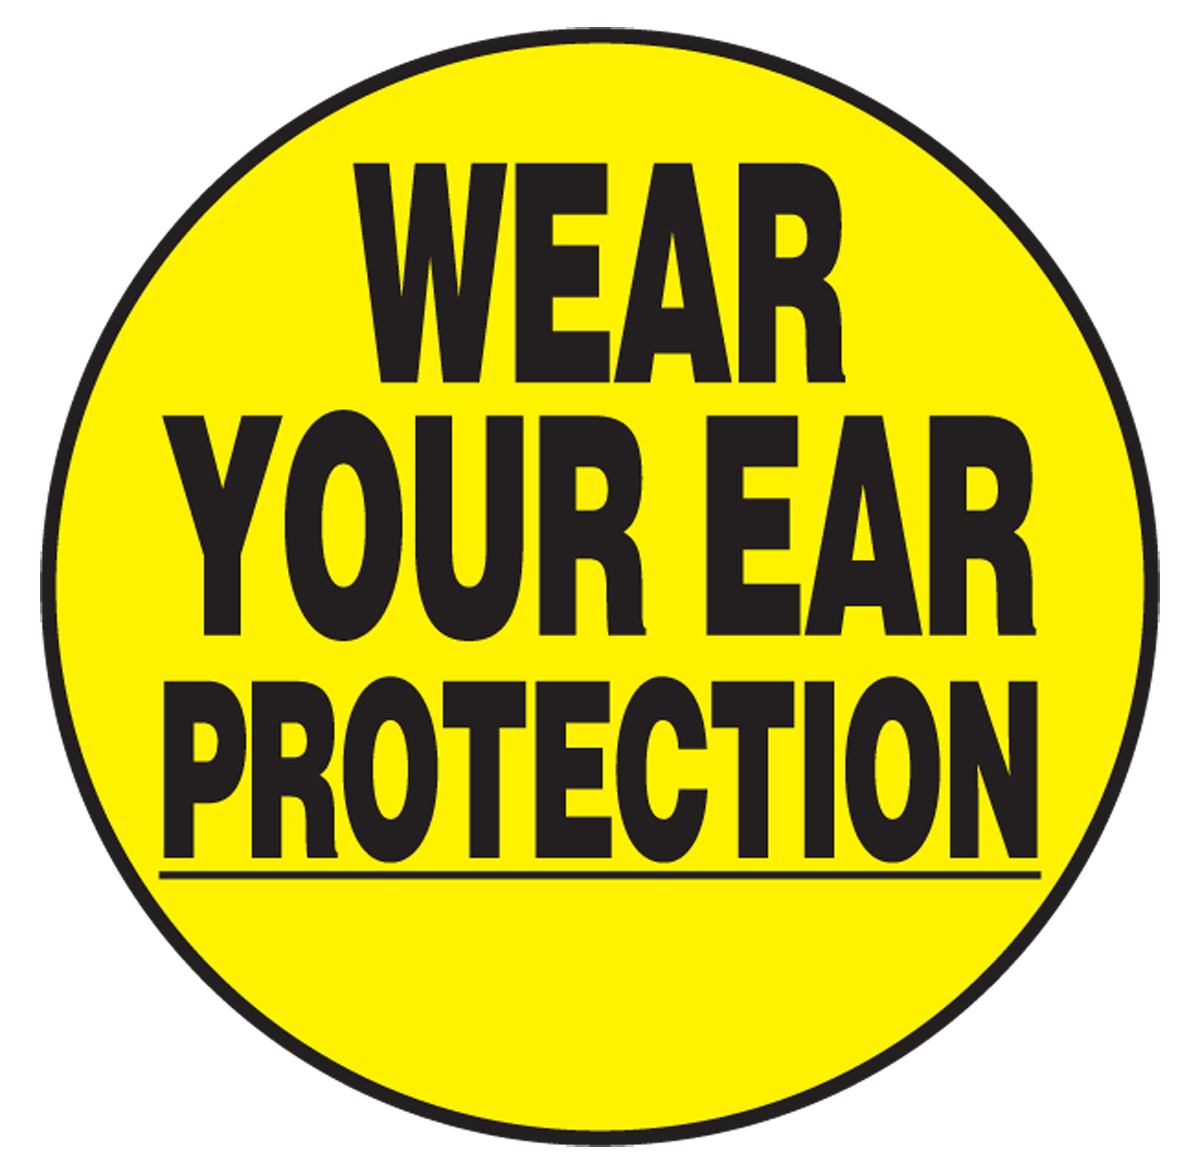 WEAR YOUR EAR PROTECTION